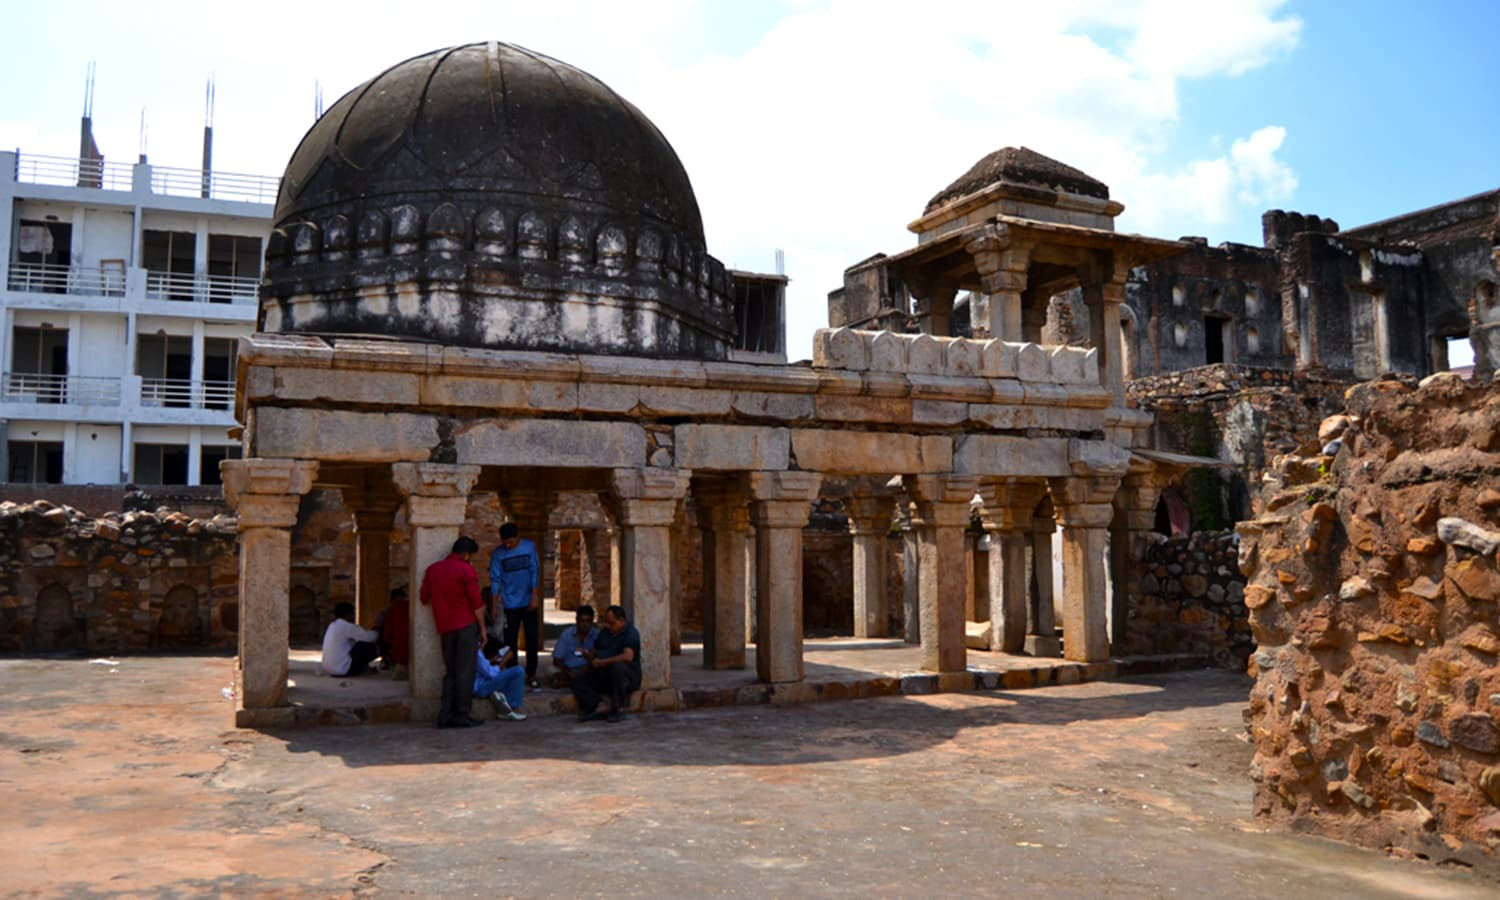 It is said that the 'chhatri' (umbrella) pavillion was built by Zafar.